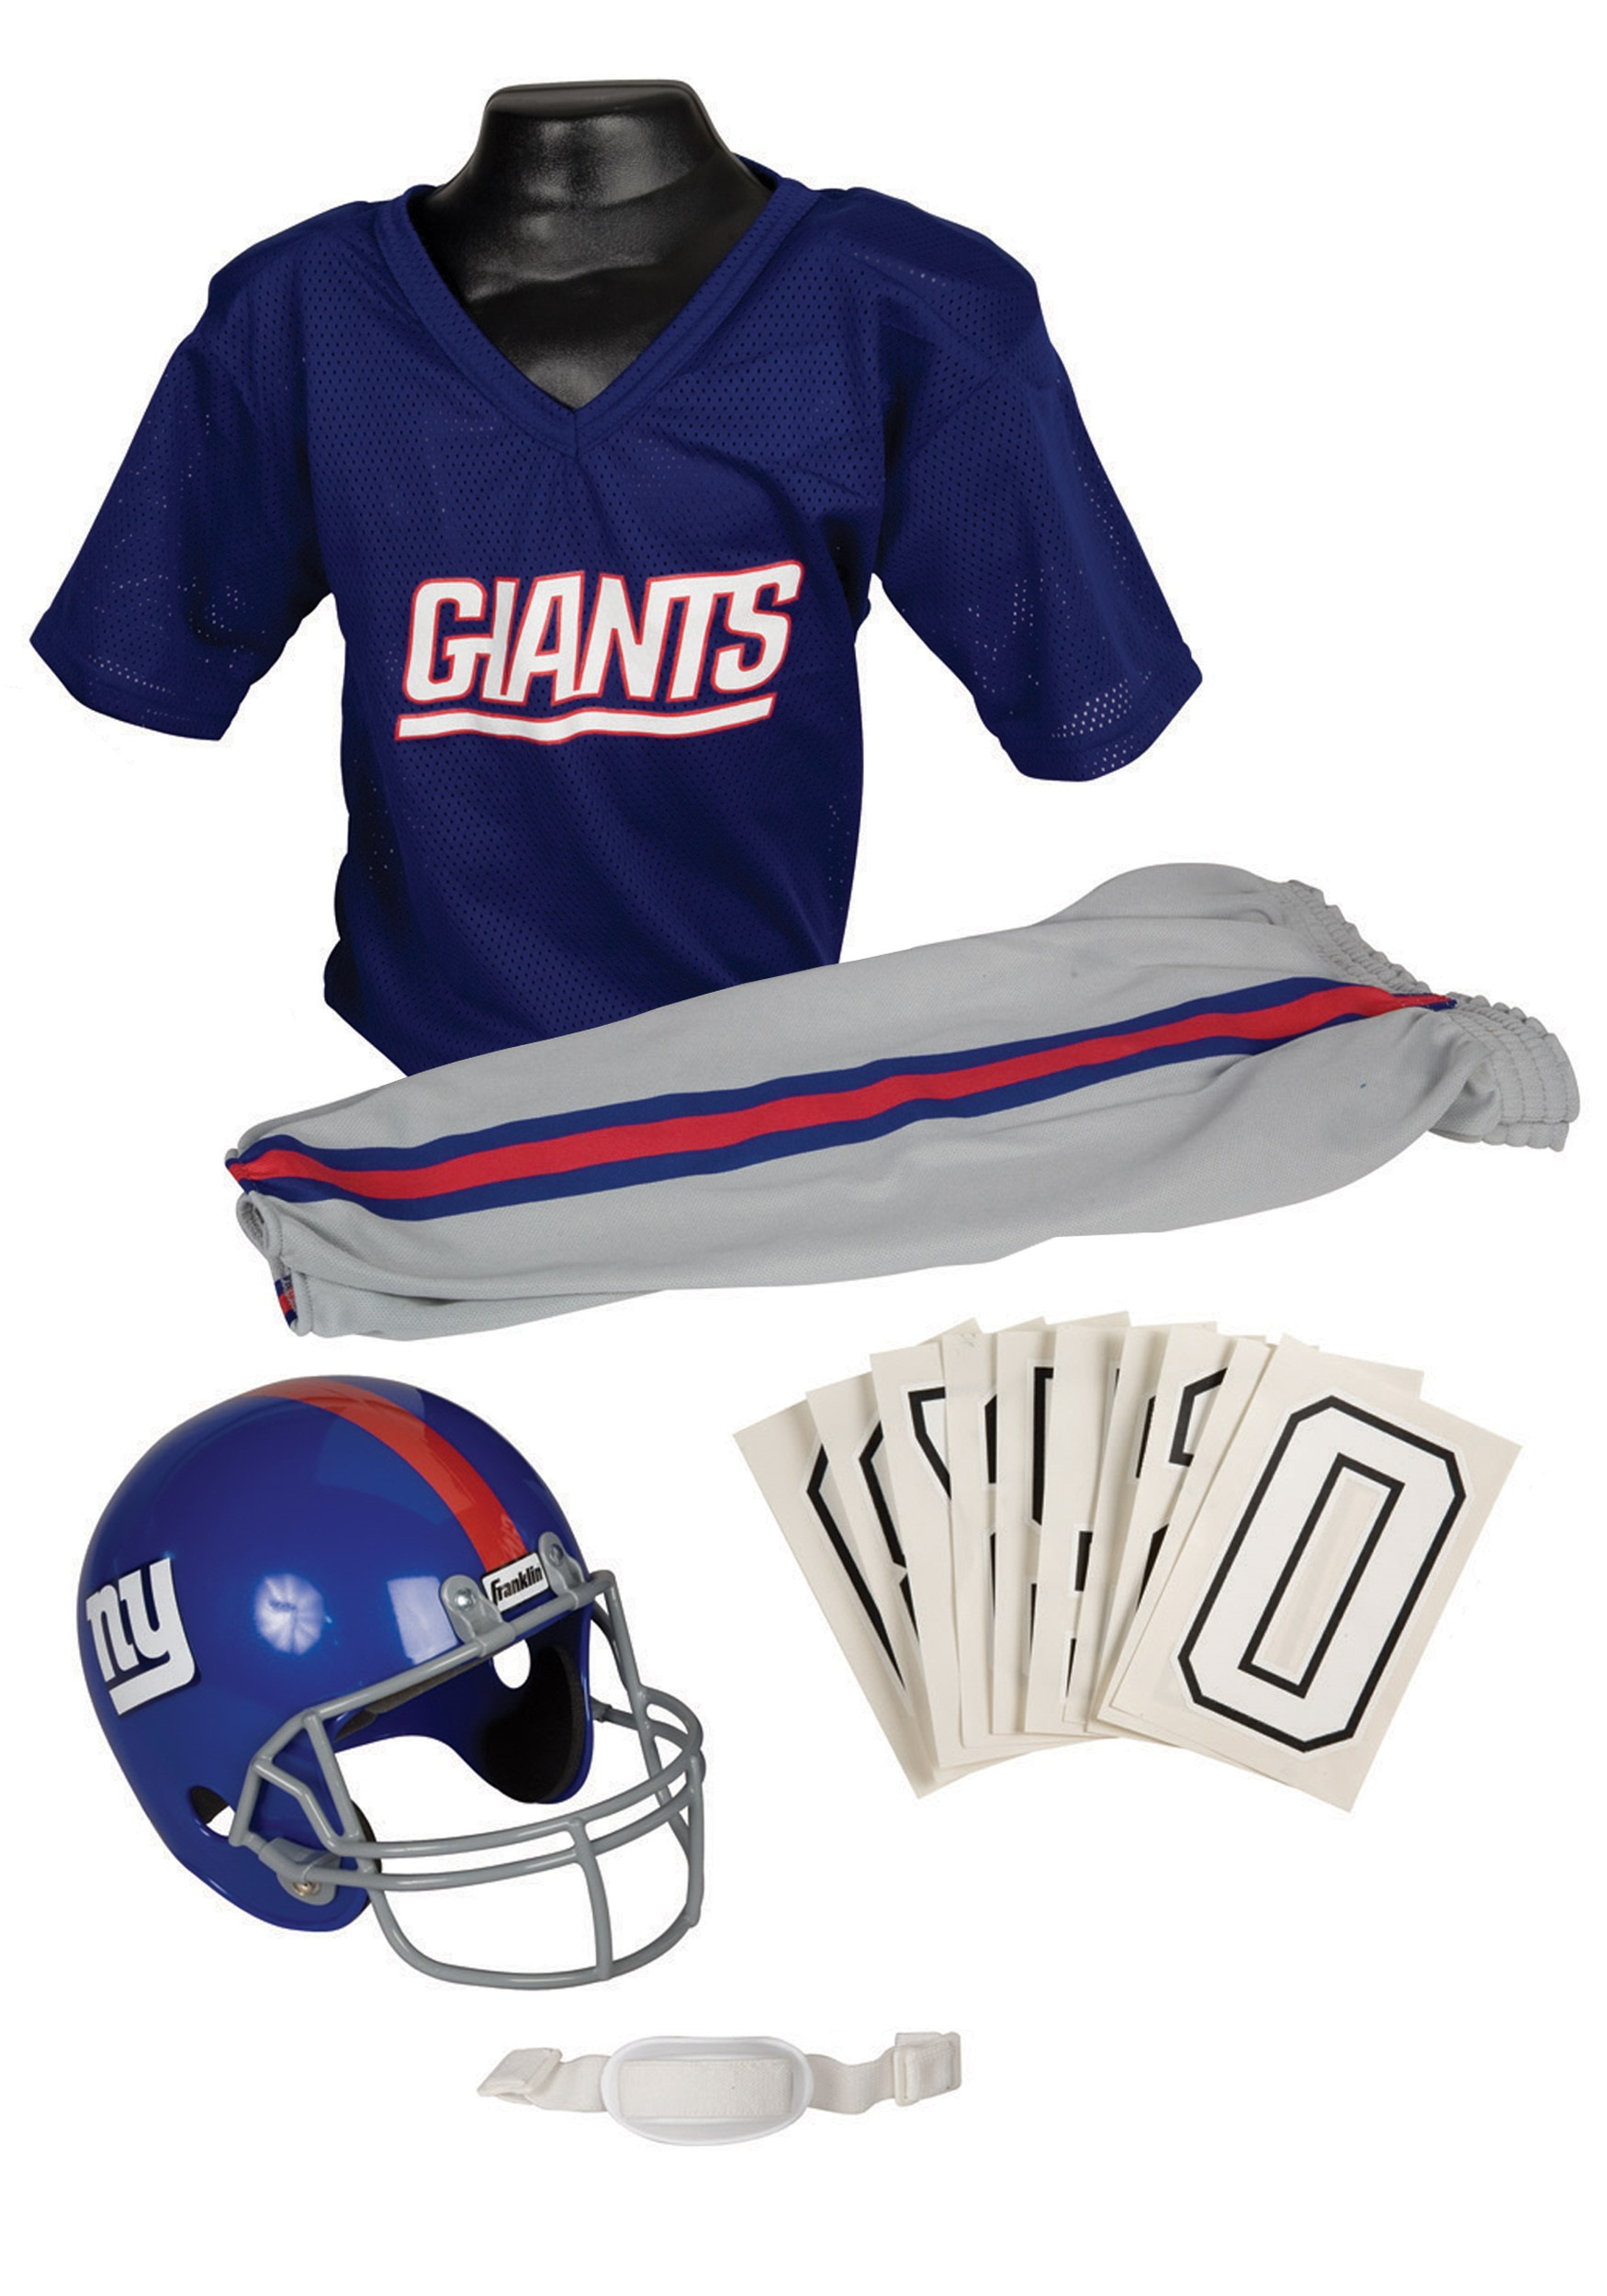 NFL Kids Giants Uniform Costume